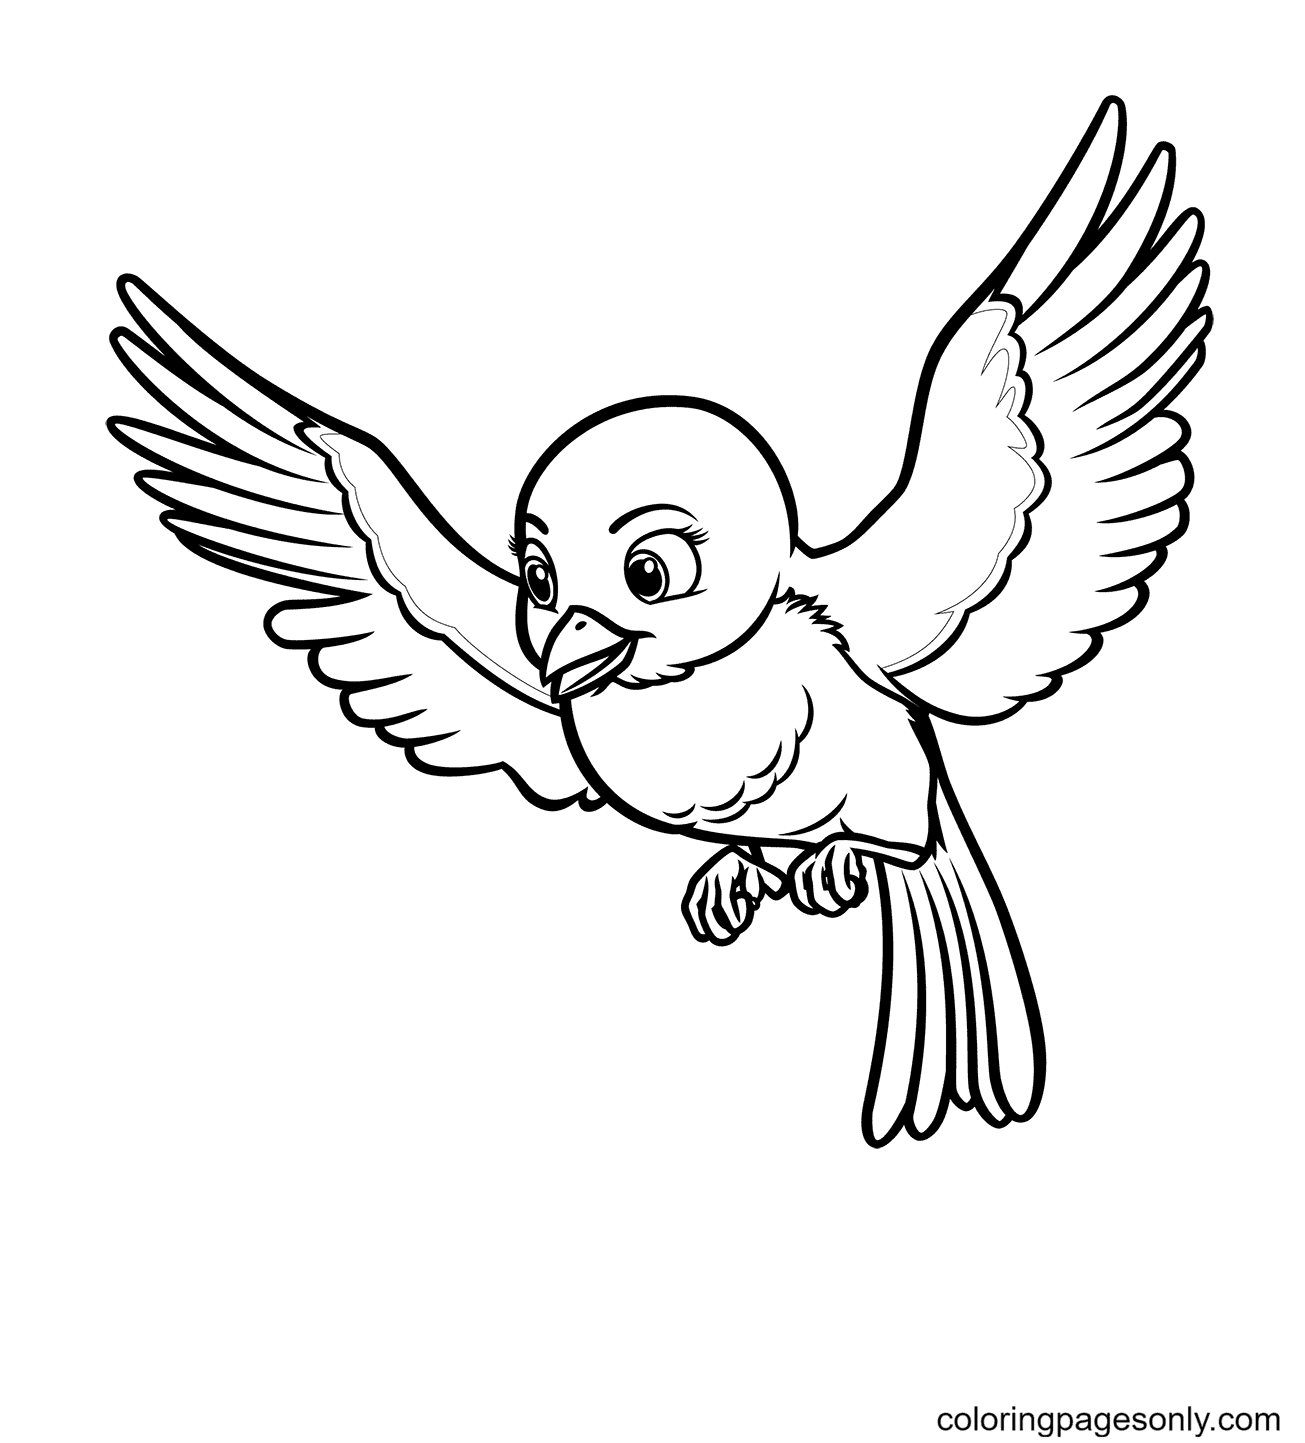 Mia the Bluebird from Sofia the First Coloring Page